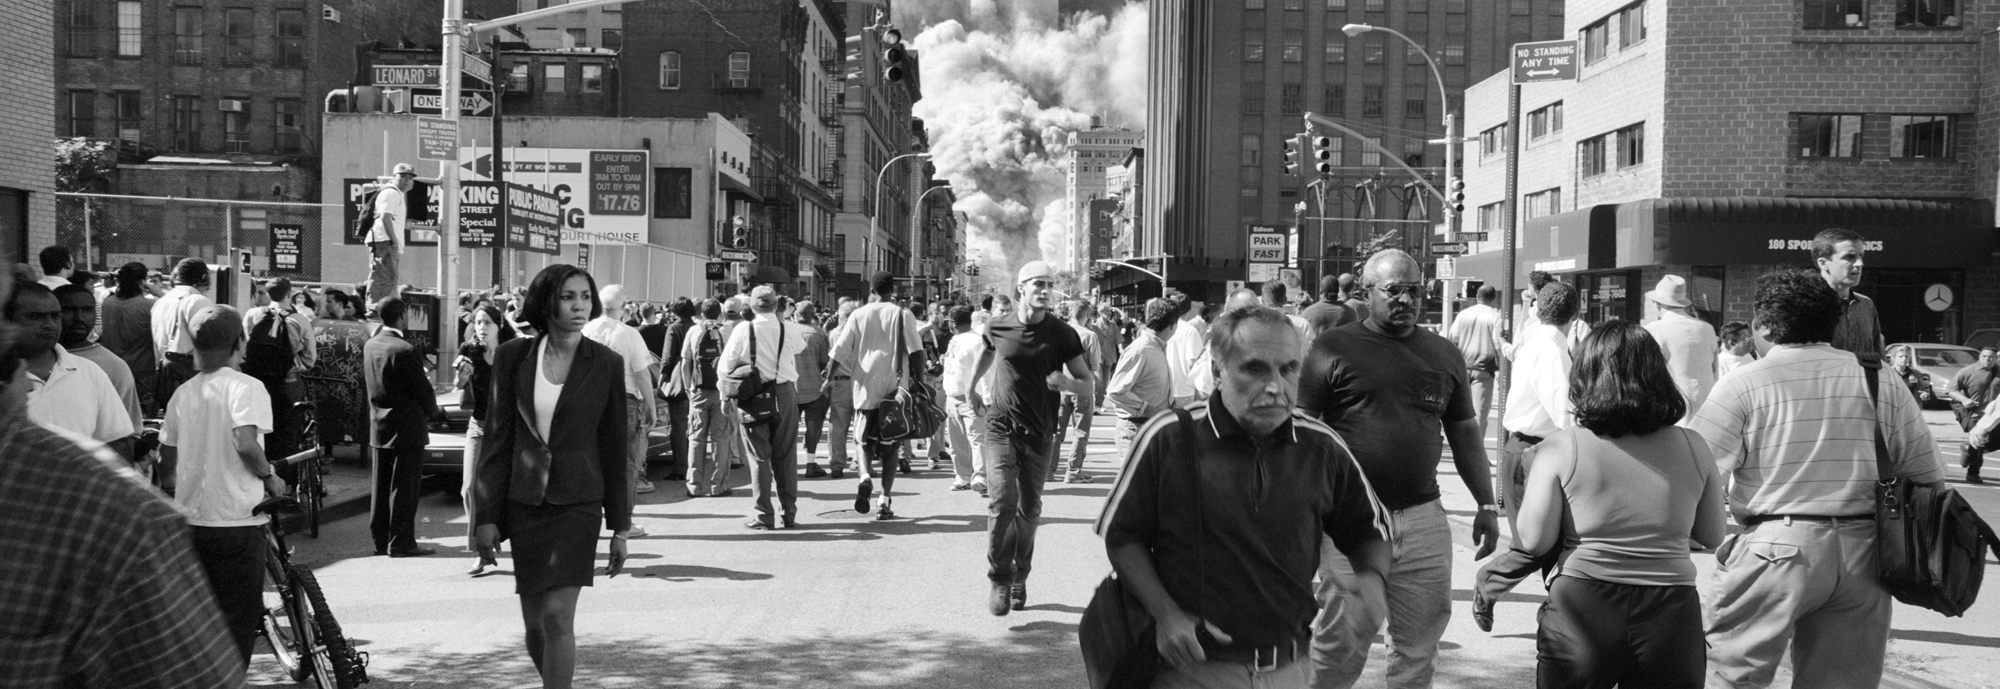 Soon after the North Tower colapses at 10:28am. The 9/11 terrorists attacks in New York City part of a comlete edit of 100 photos. Tribeca, New York City, New York